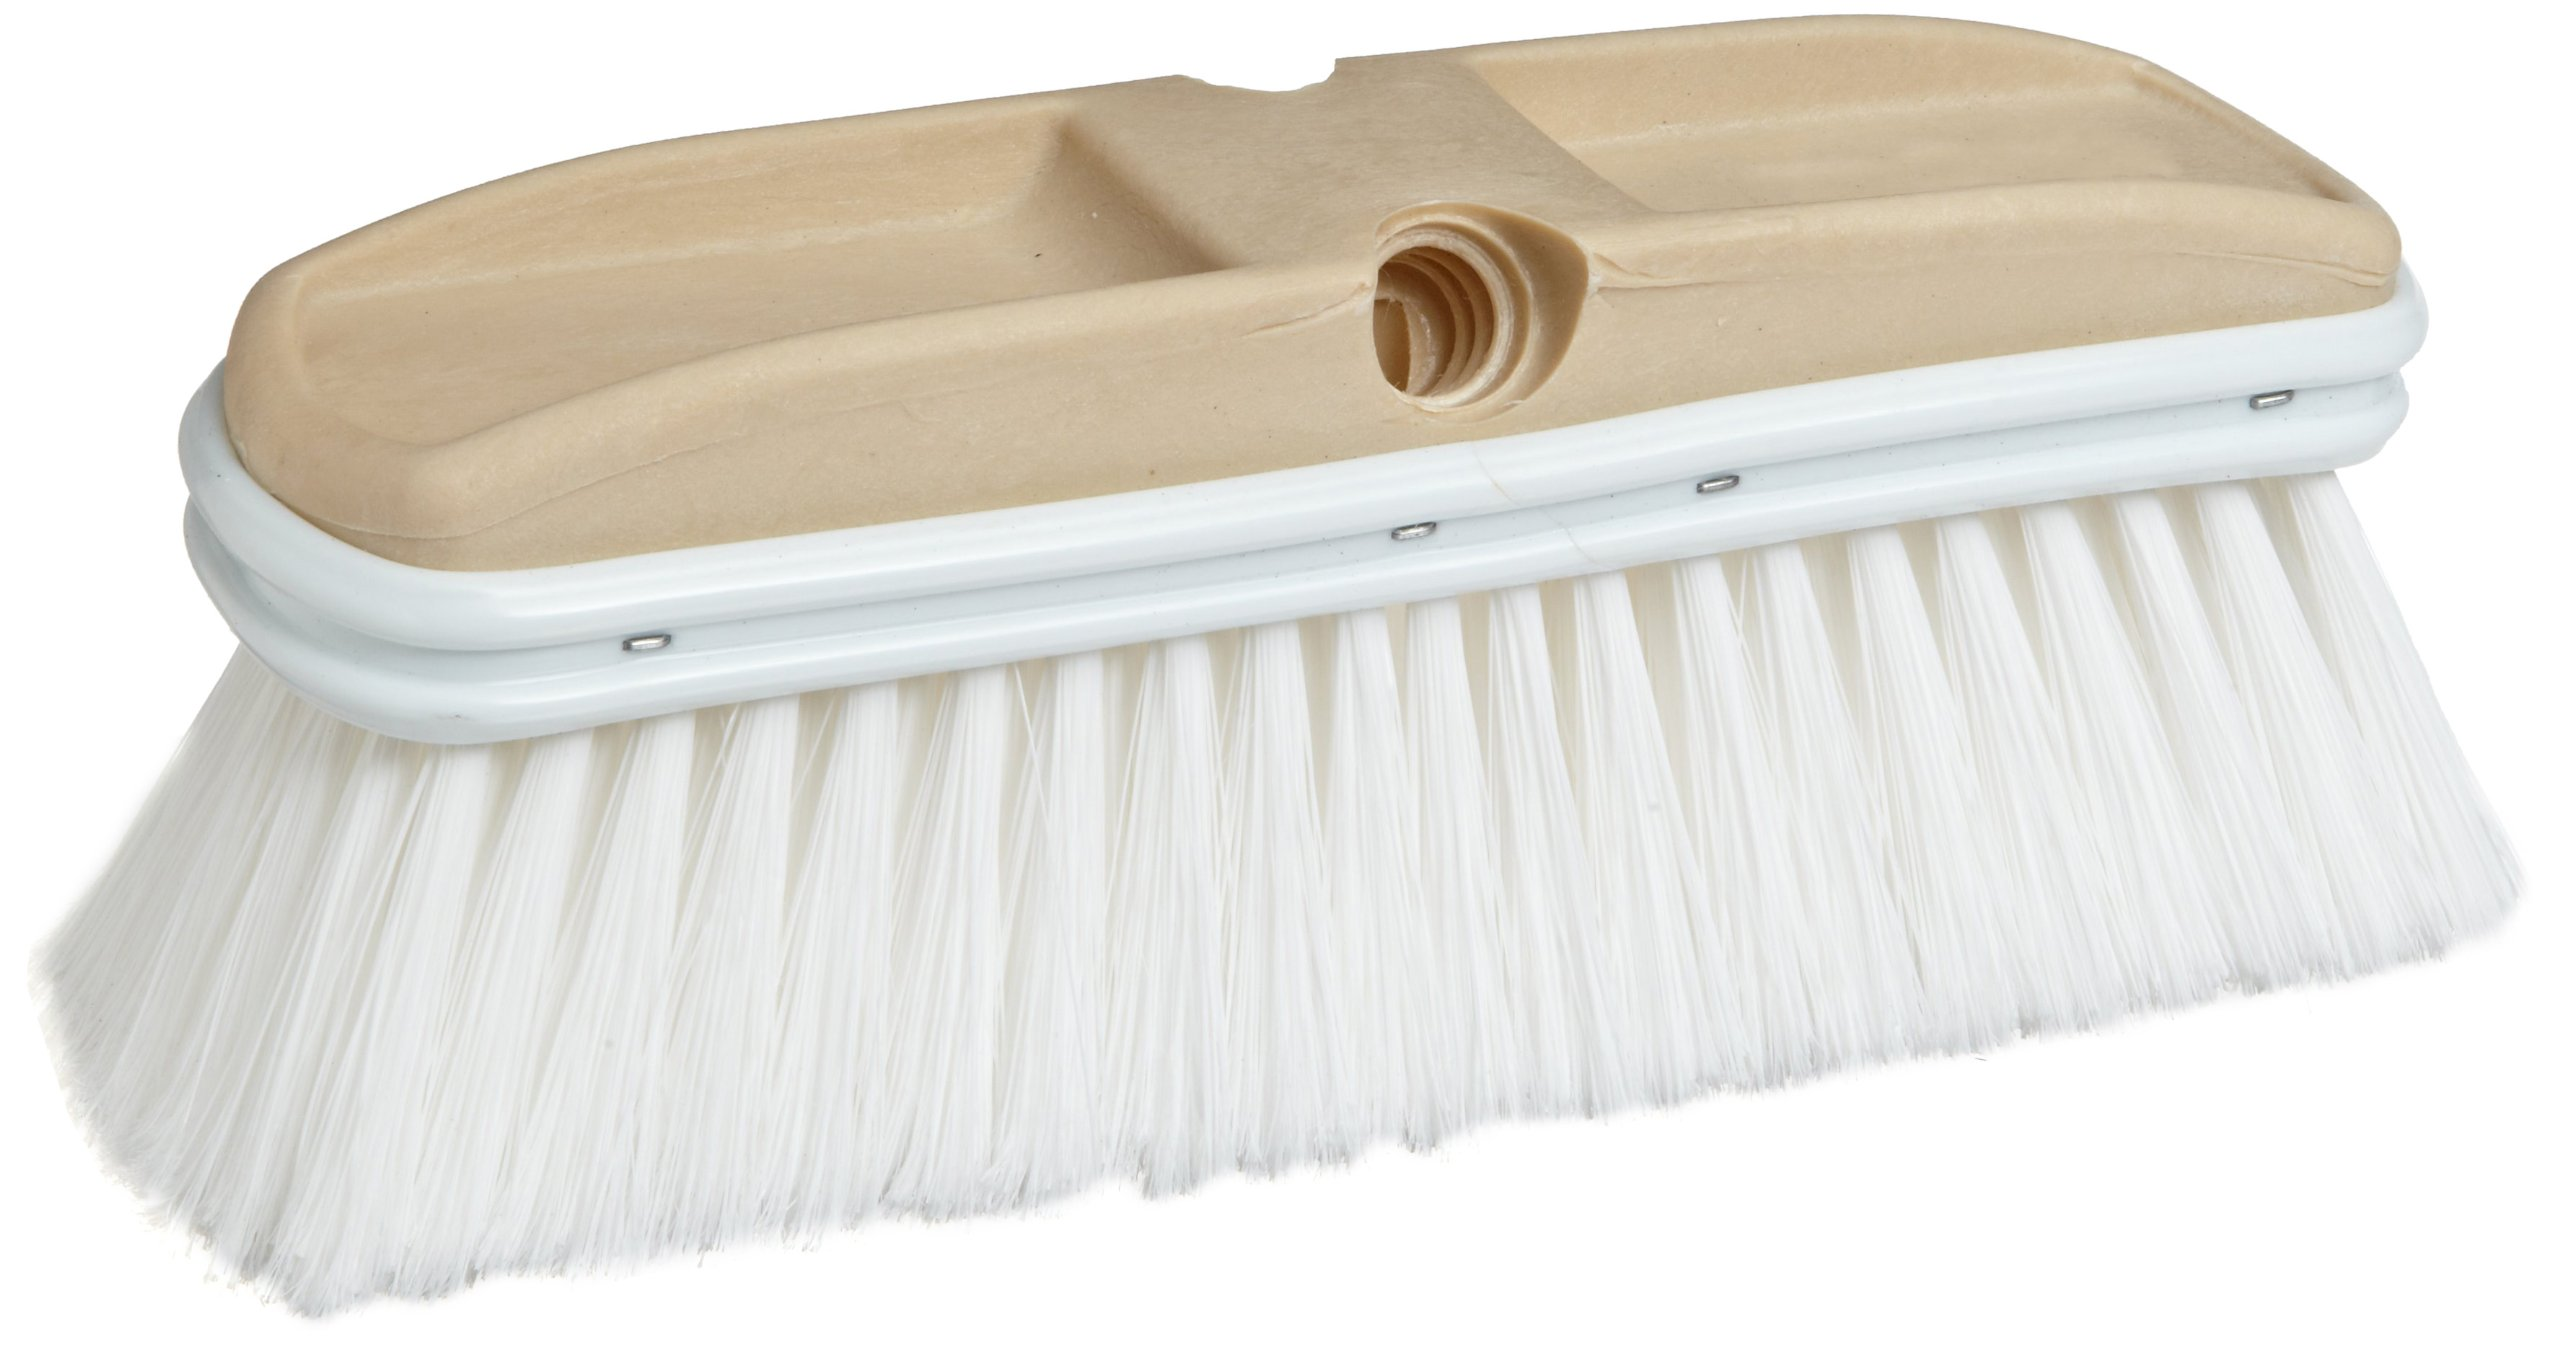 Weiler 44510 Polystyrene Vehicle Care Wash Brush, 2'' Head Width, 9-1/2'' Overall Length by Weiler